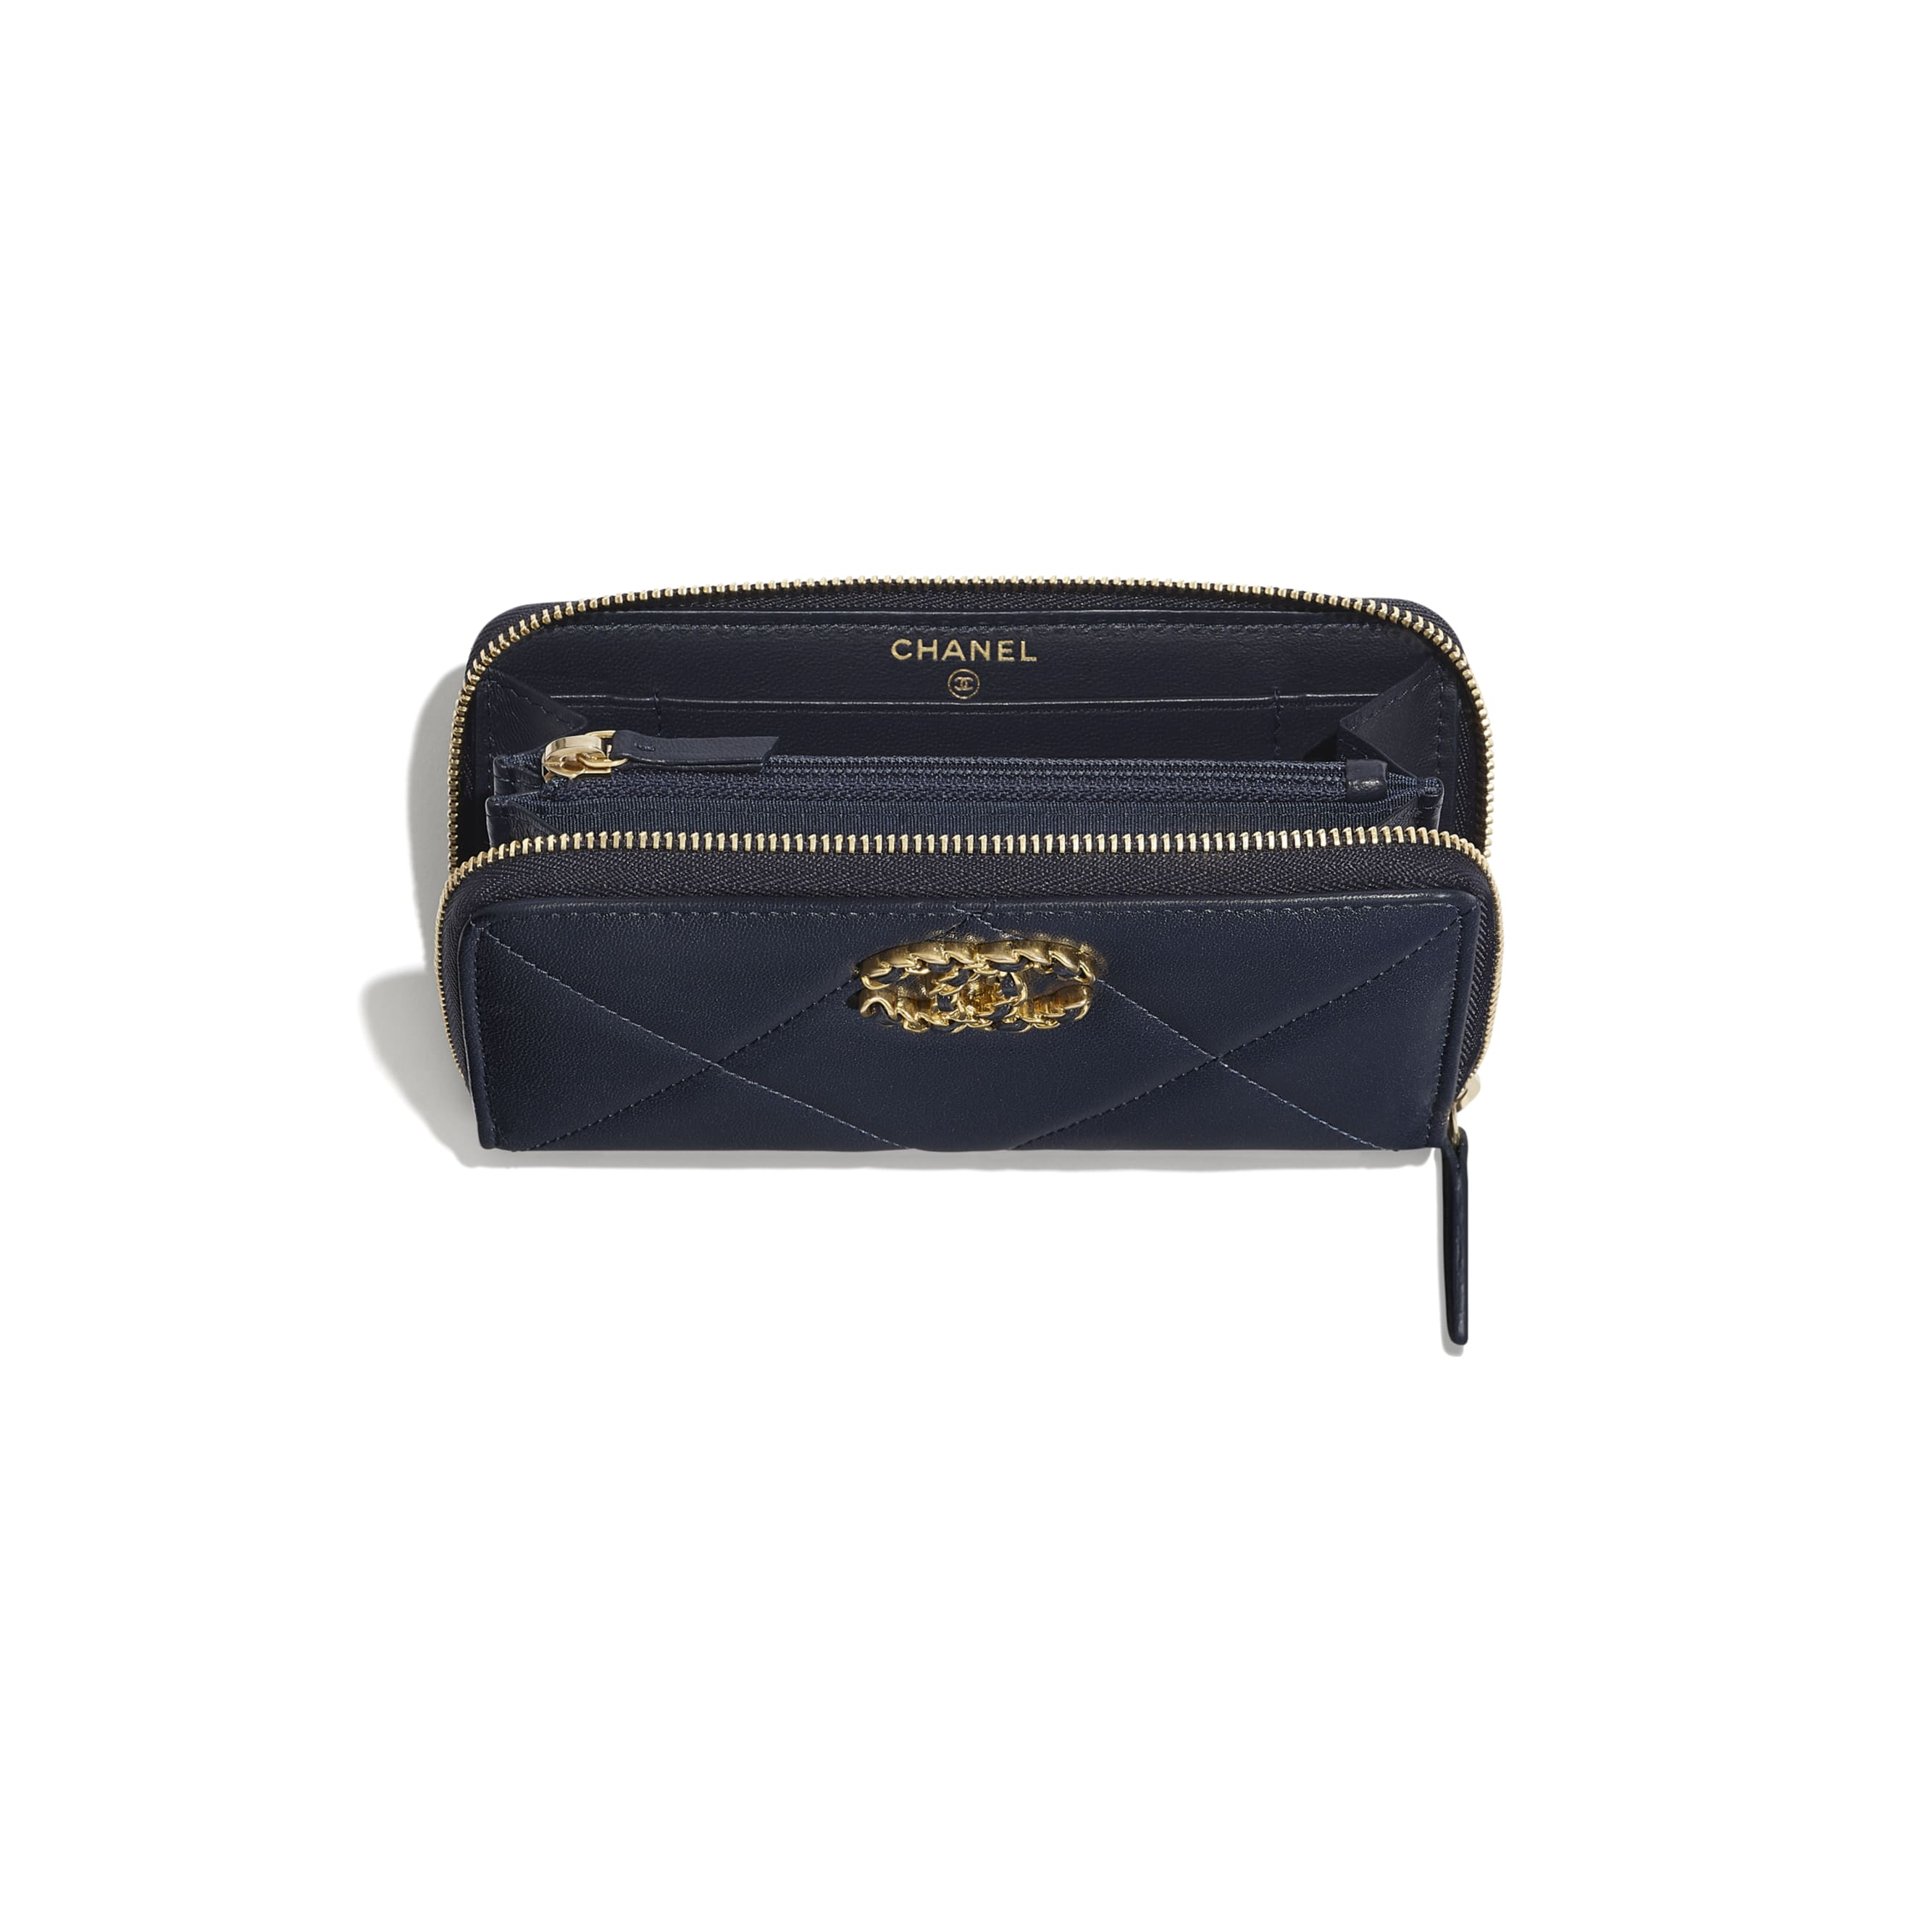 CHANEL 19 Zipped Wallet - Navy Blue - Lambskin, Gold-Tone, Silver-Tone & Ruthenium-Finish Metal - Other view - see standard sized version